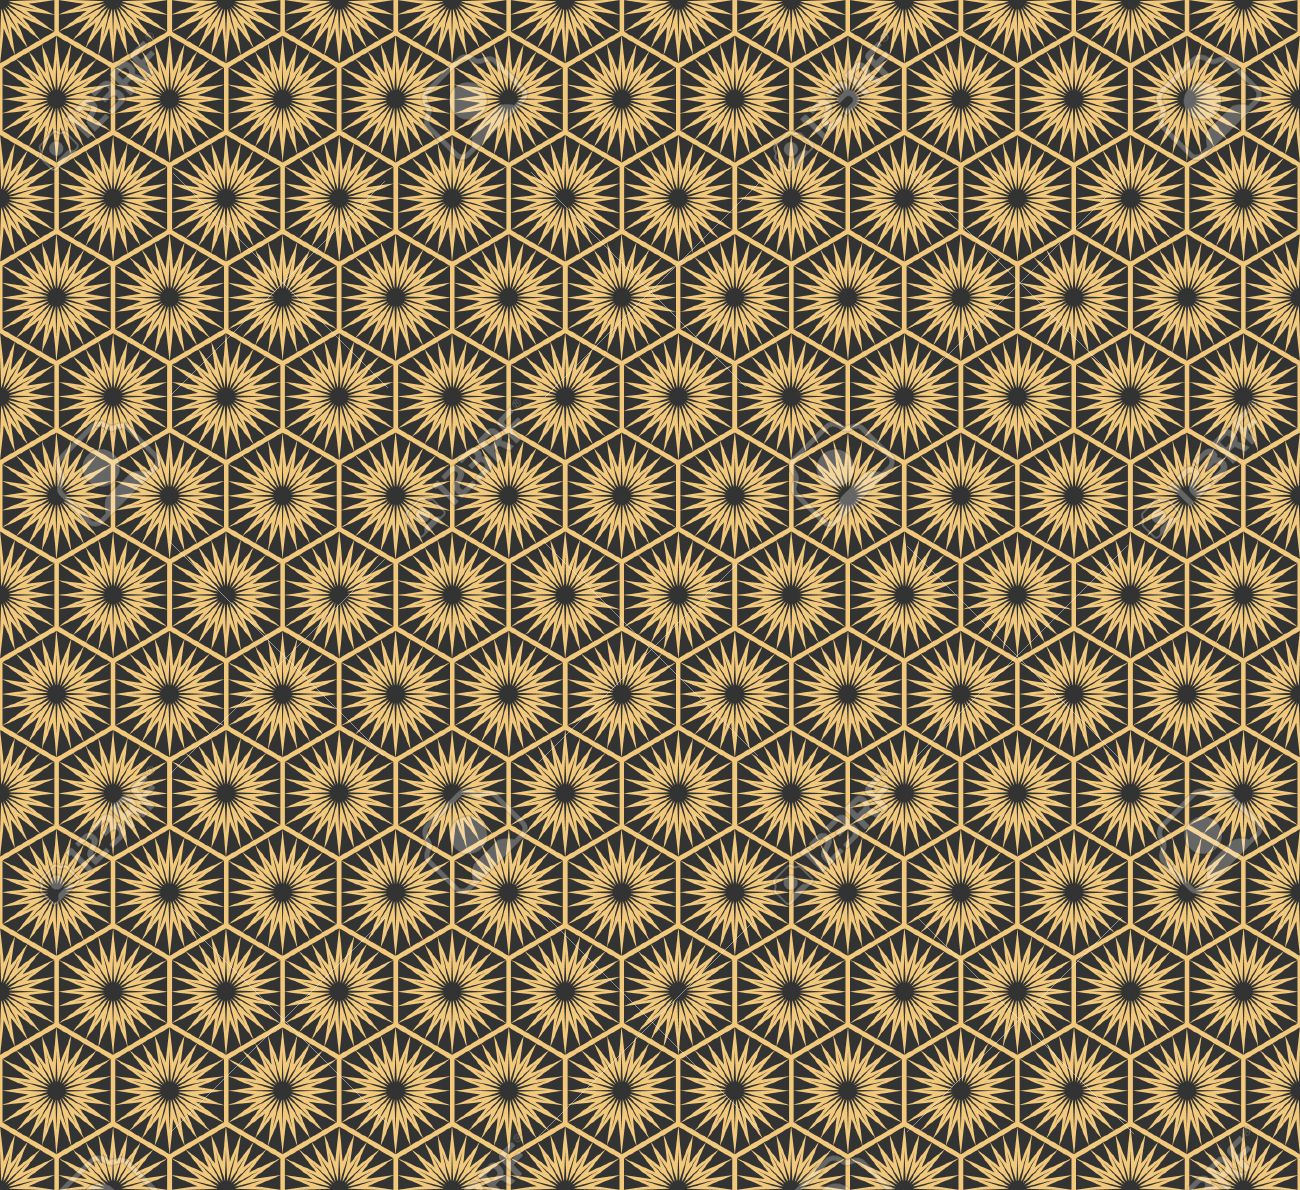 Art Deco Papier Peint art deco hexagonal seamless vintage wallpaper pattern